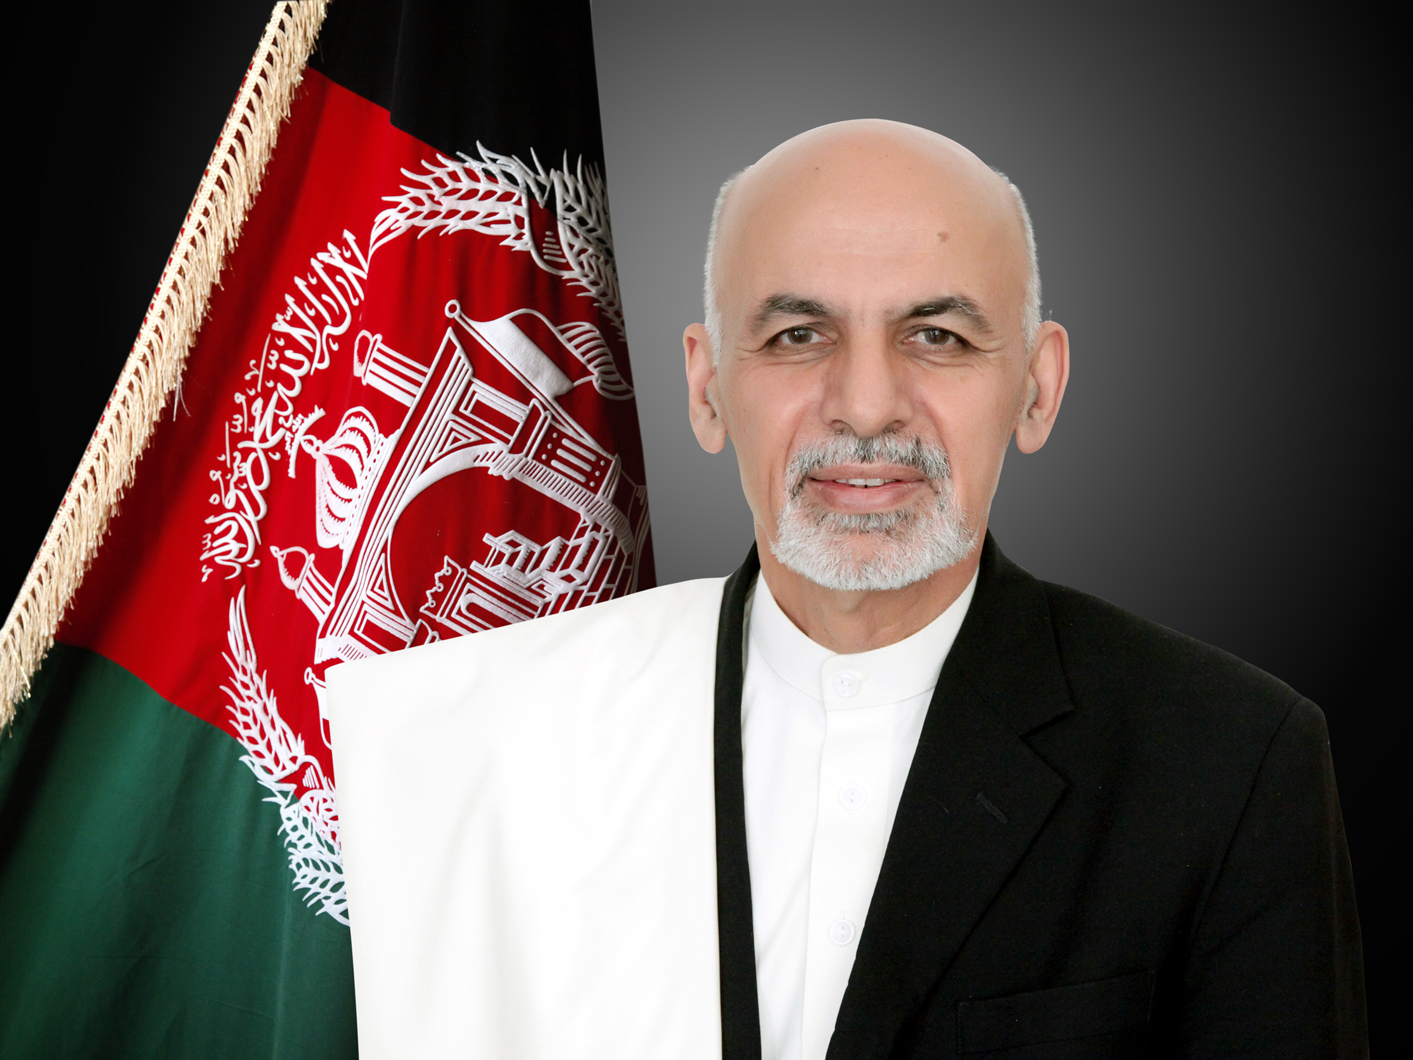 Afghanistan's vision for peace: A conversation with H.E. President Mohammad Ashraf  Ghani - Atlantic Council